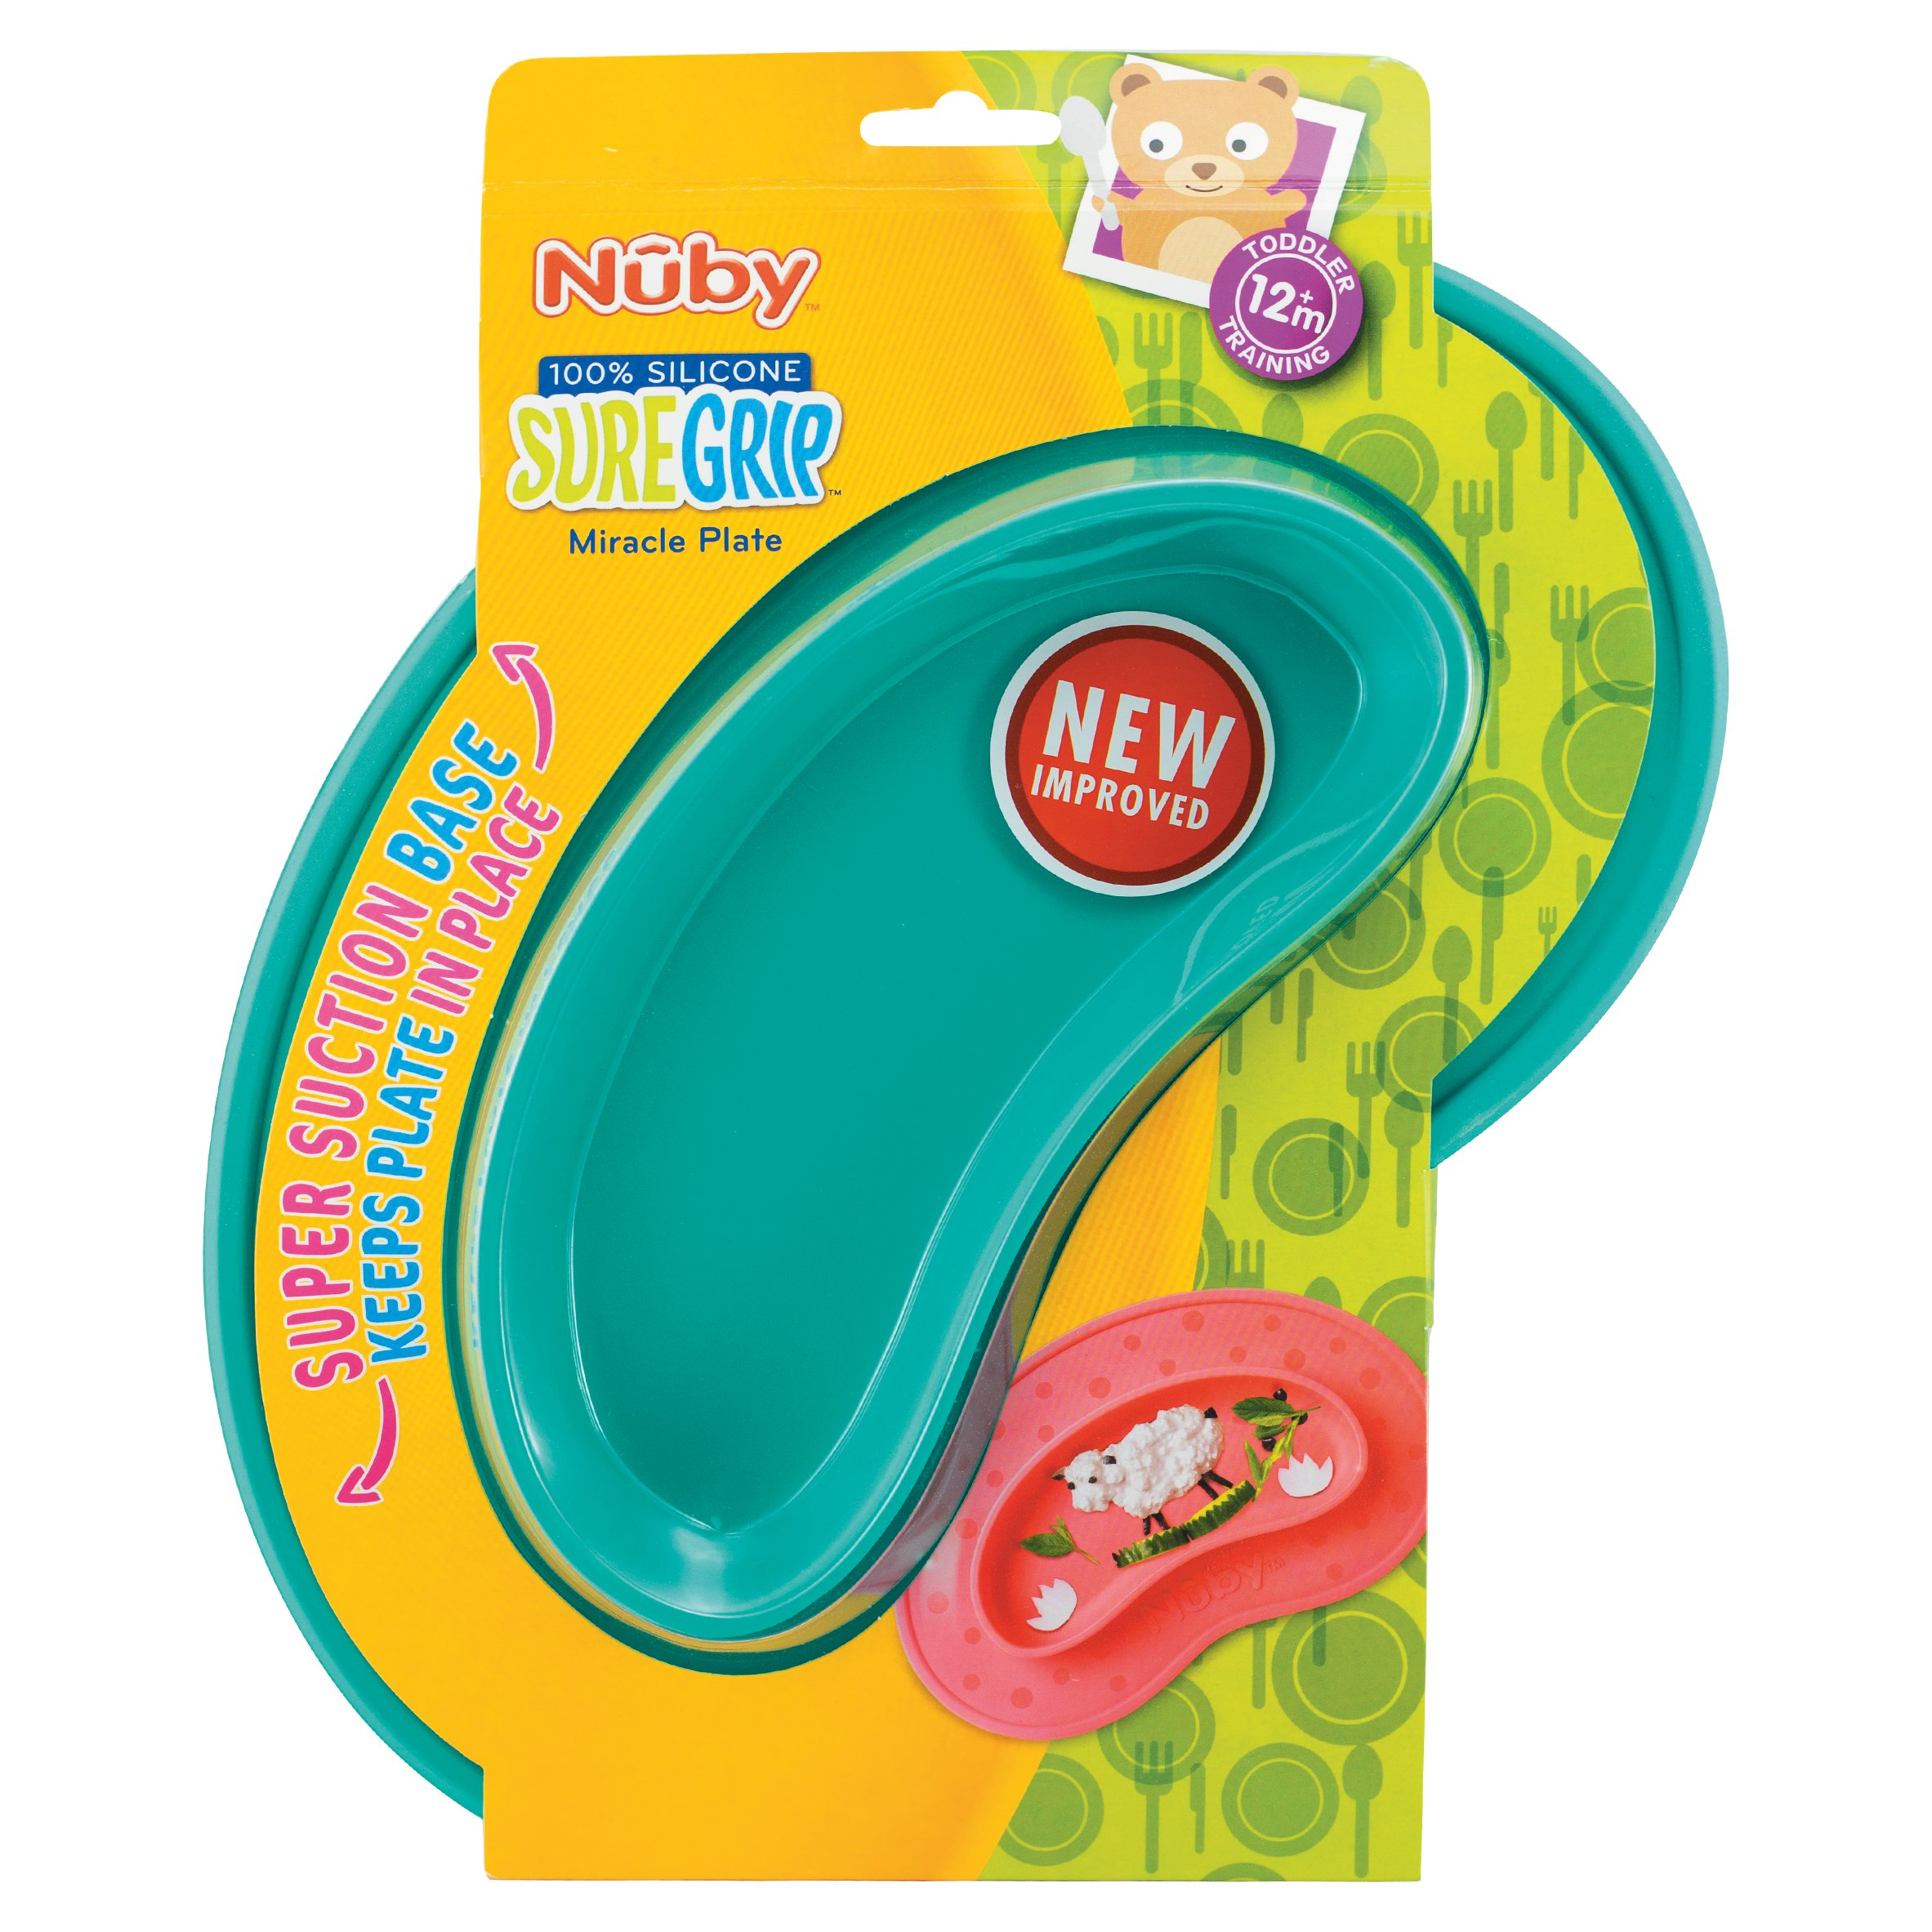 Assorted Colours Nuby UK Sure Grip Miracle Plate